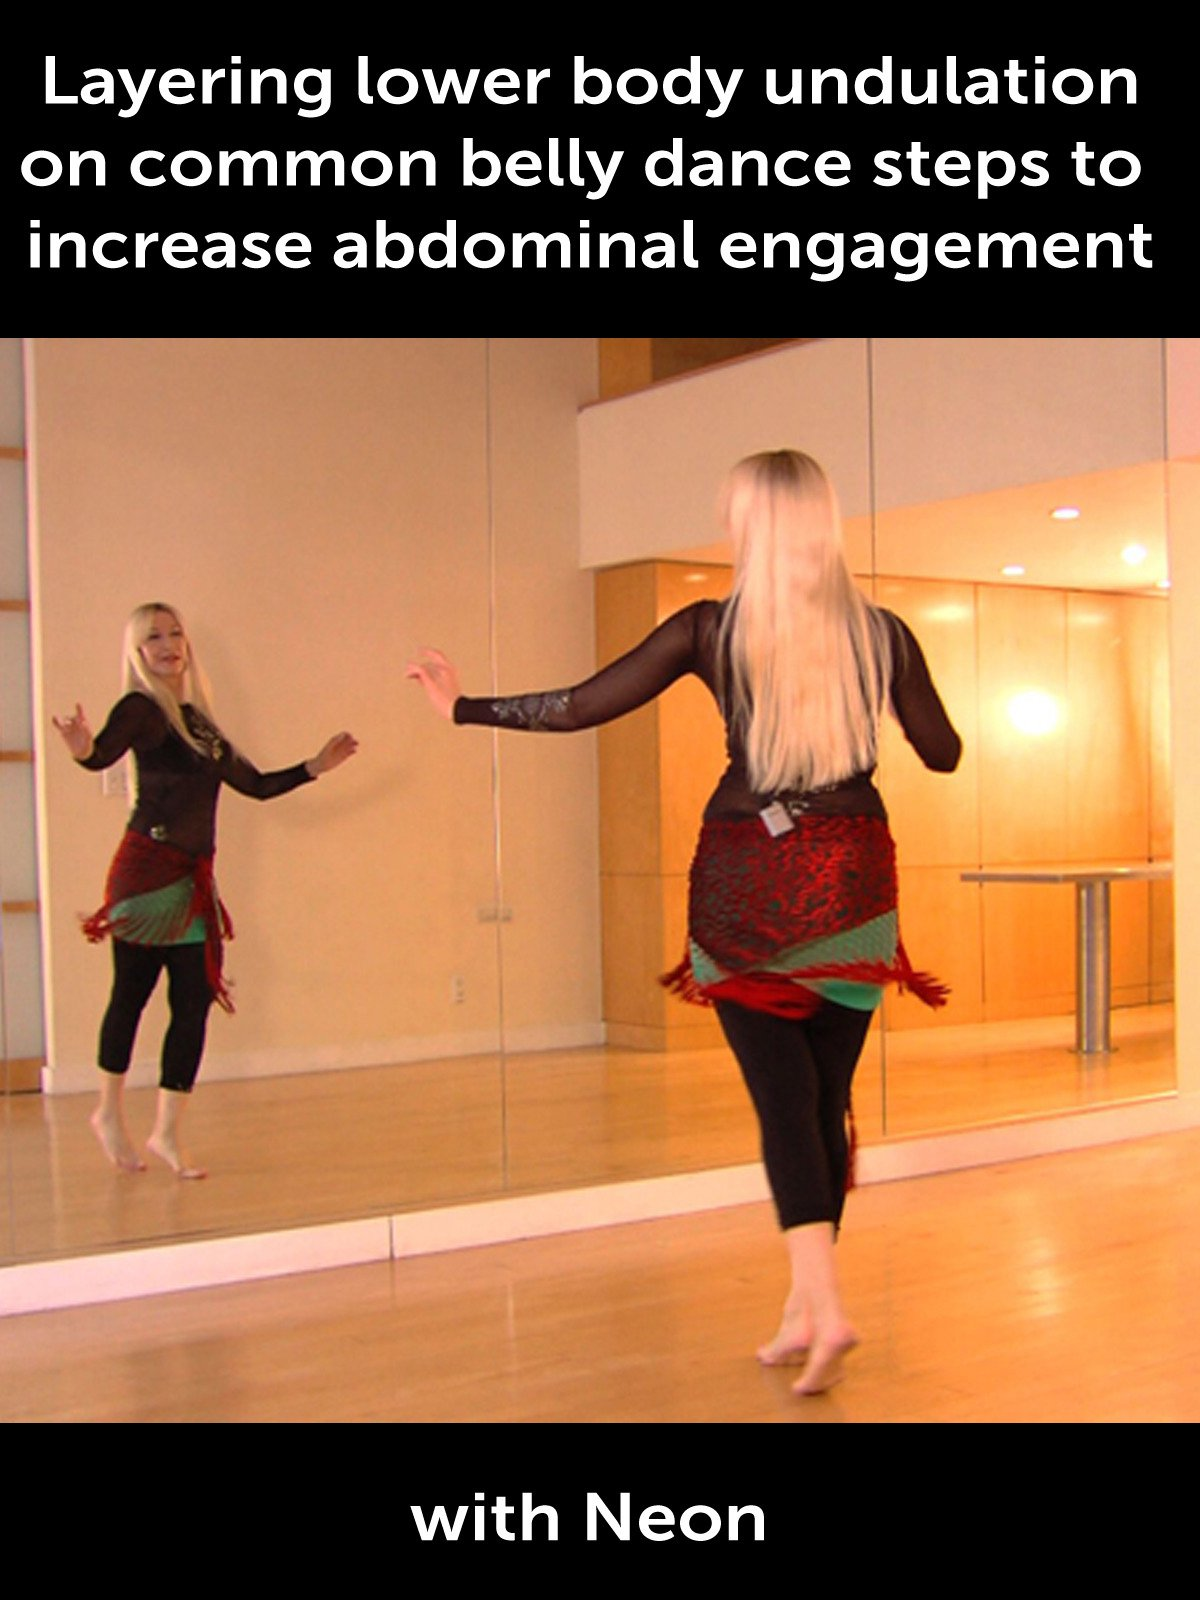 Layering lower body undulation on common belly dance steps to increase abdominal engagement